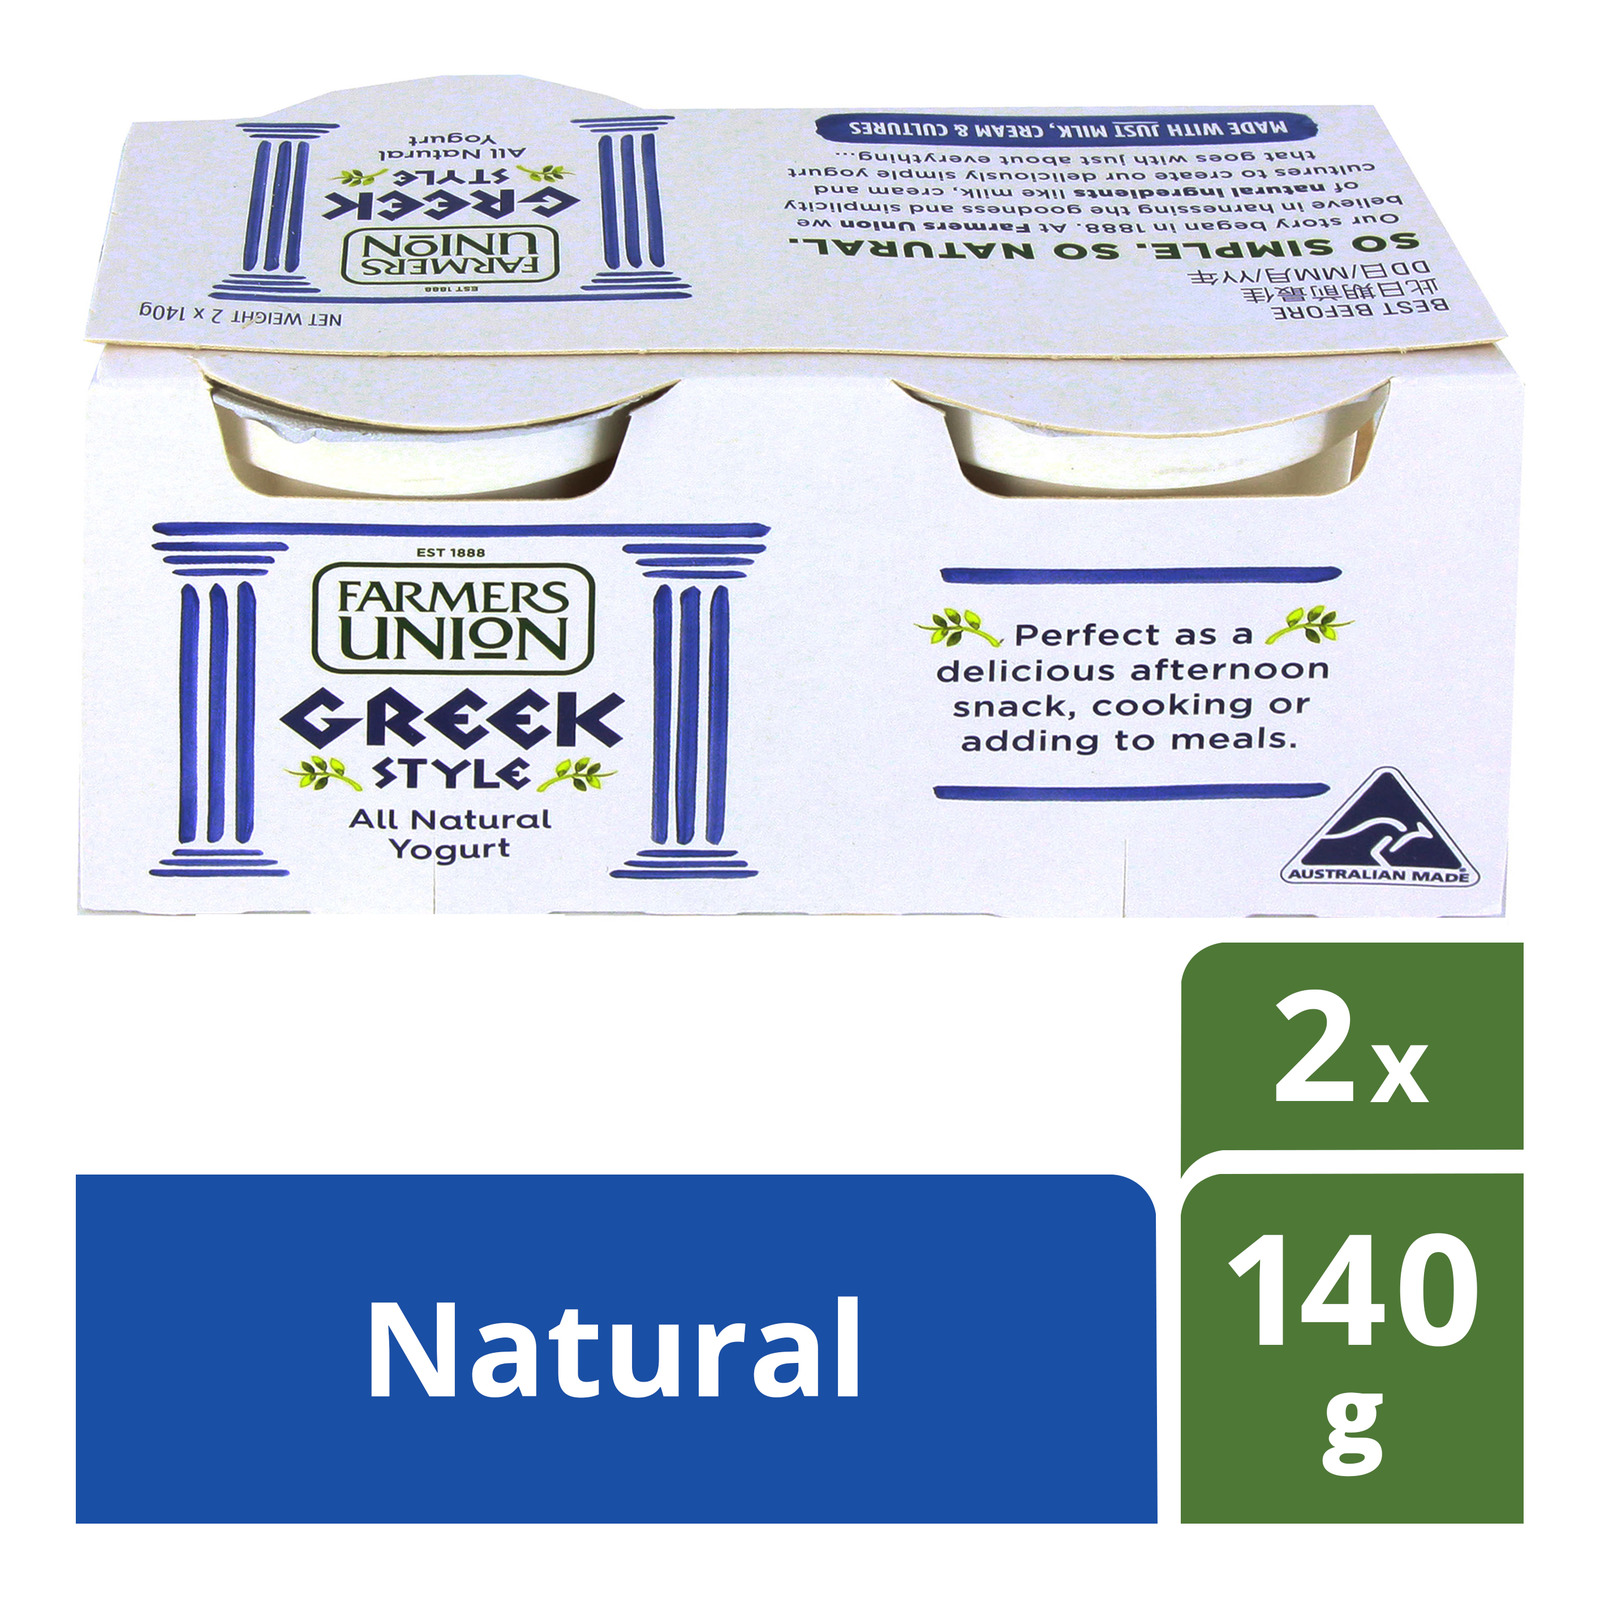 Farmers Union Greek Style Yoghurt - Natural